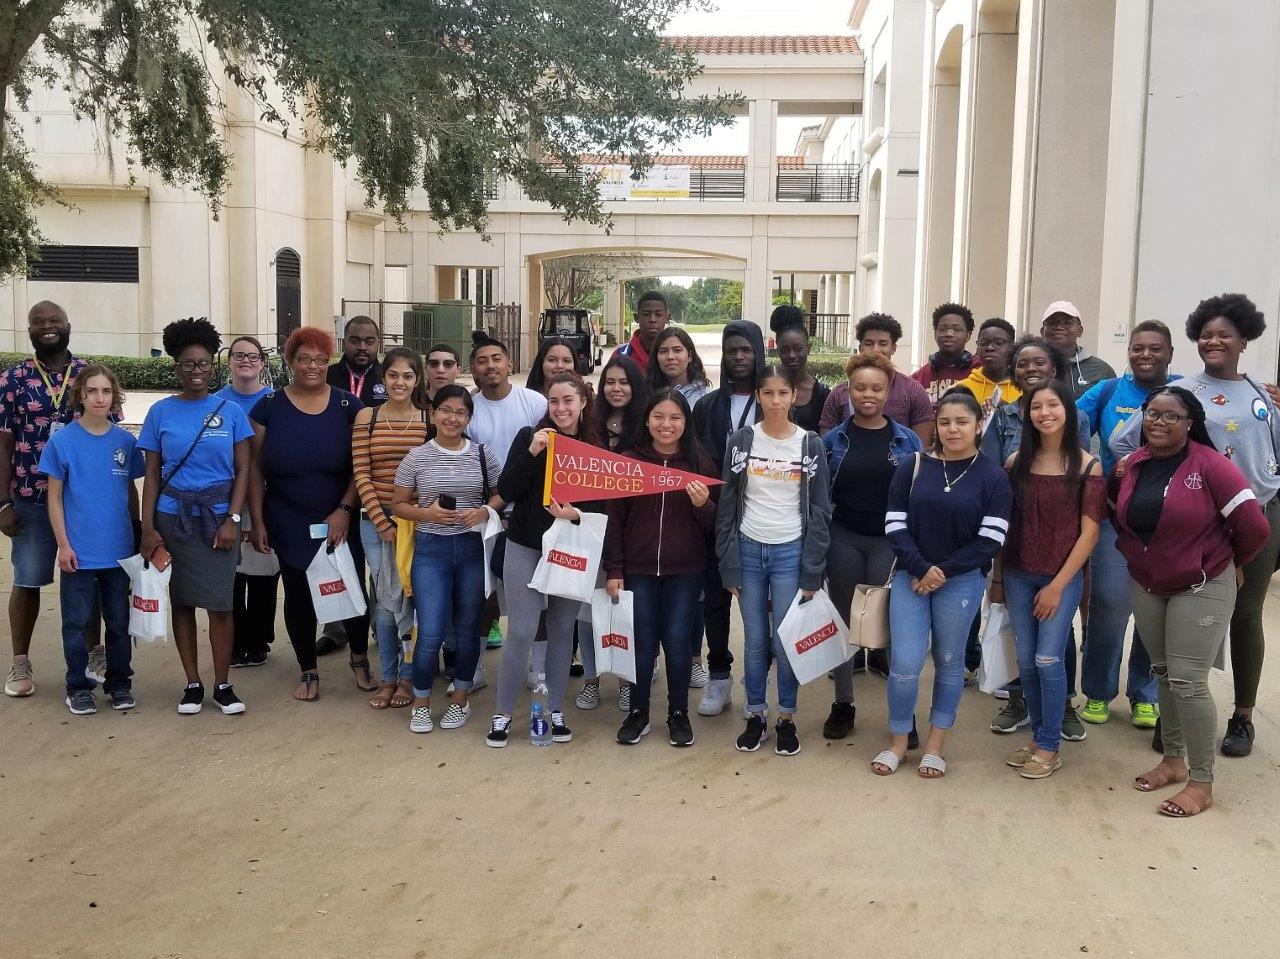 Johnson Scholars/Take Stock students explore campus life at Valencia College